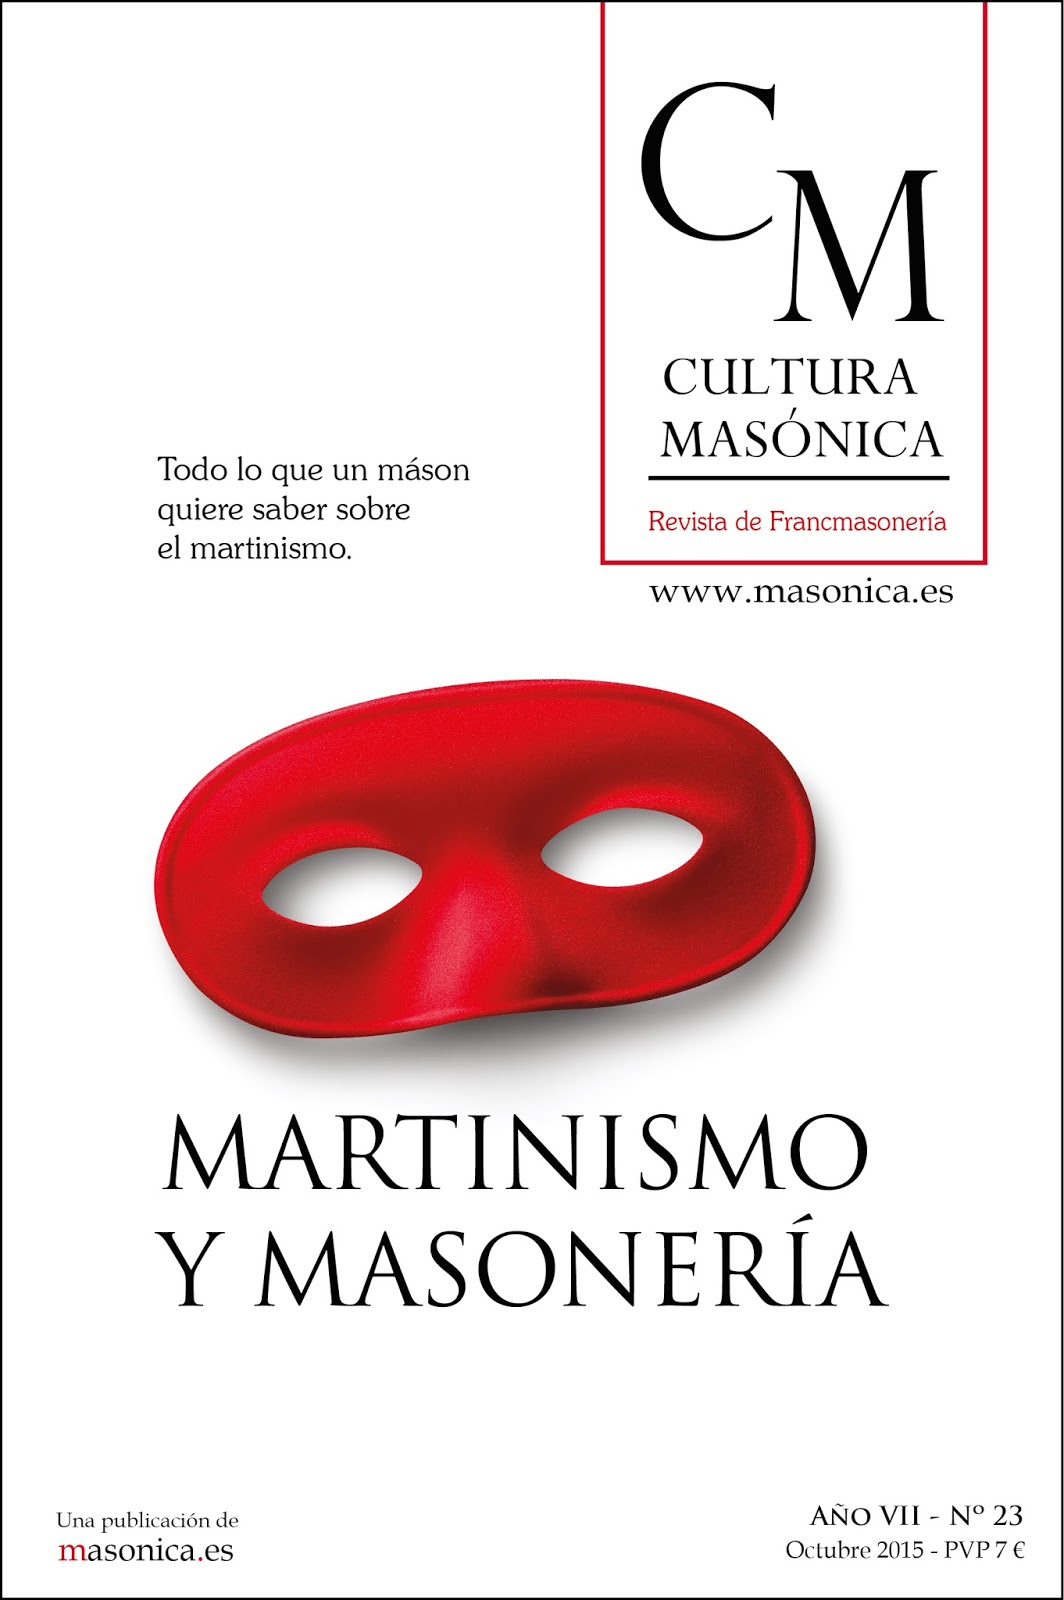 the hedge mason martinism and masonry a volume of essays in martinism and masonry a volume of essays in spanish from masonica es